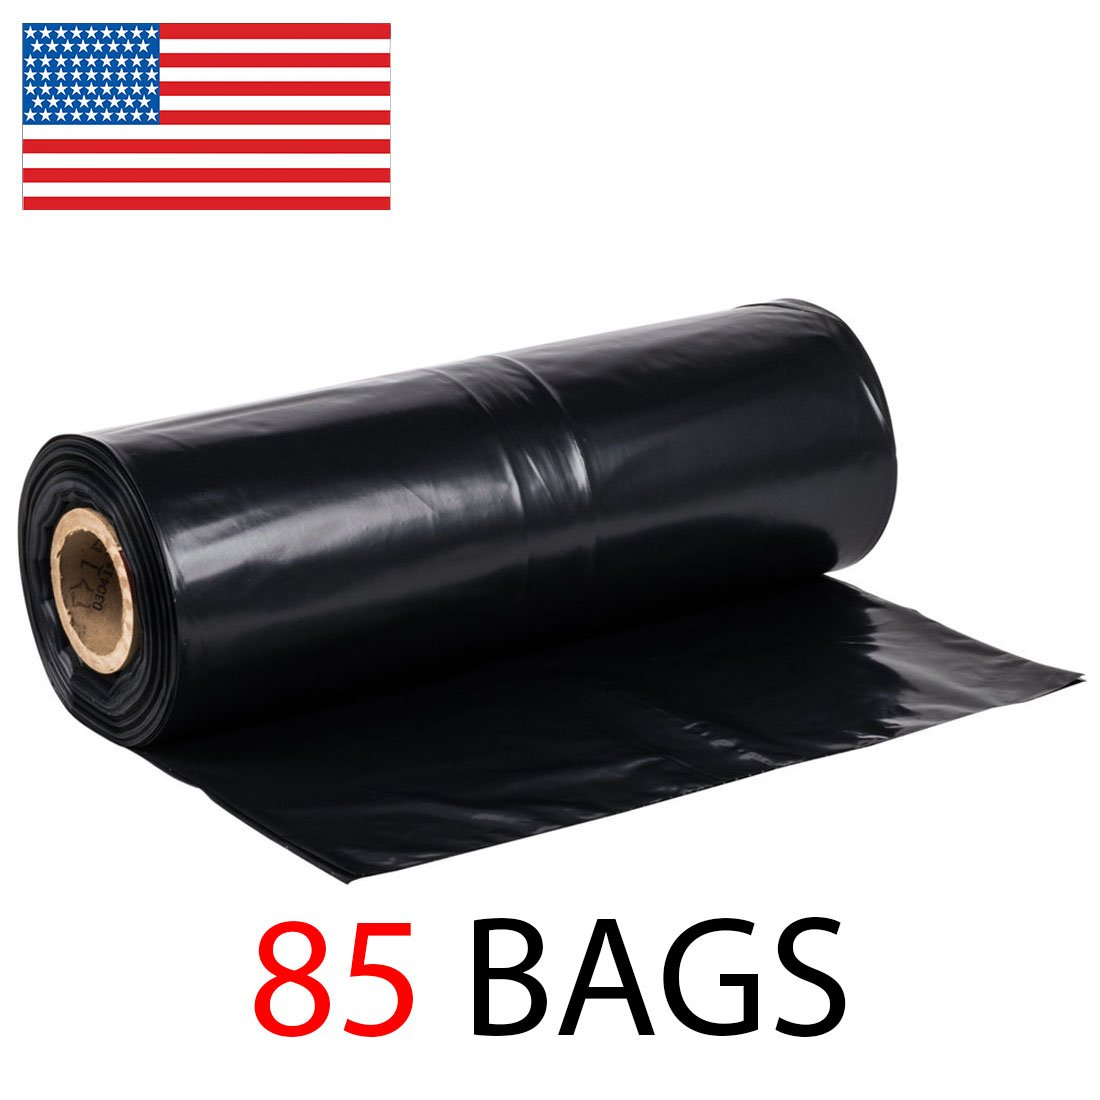 42 Gallon Roll of 85 Strong Contractor Bags on Roll, 2.75MIL Durable, Puncture Resistant, MADE IN USA, 37'' x 43